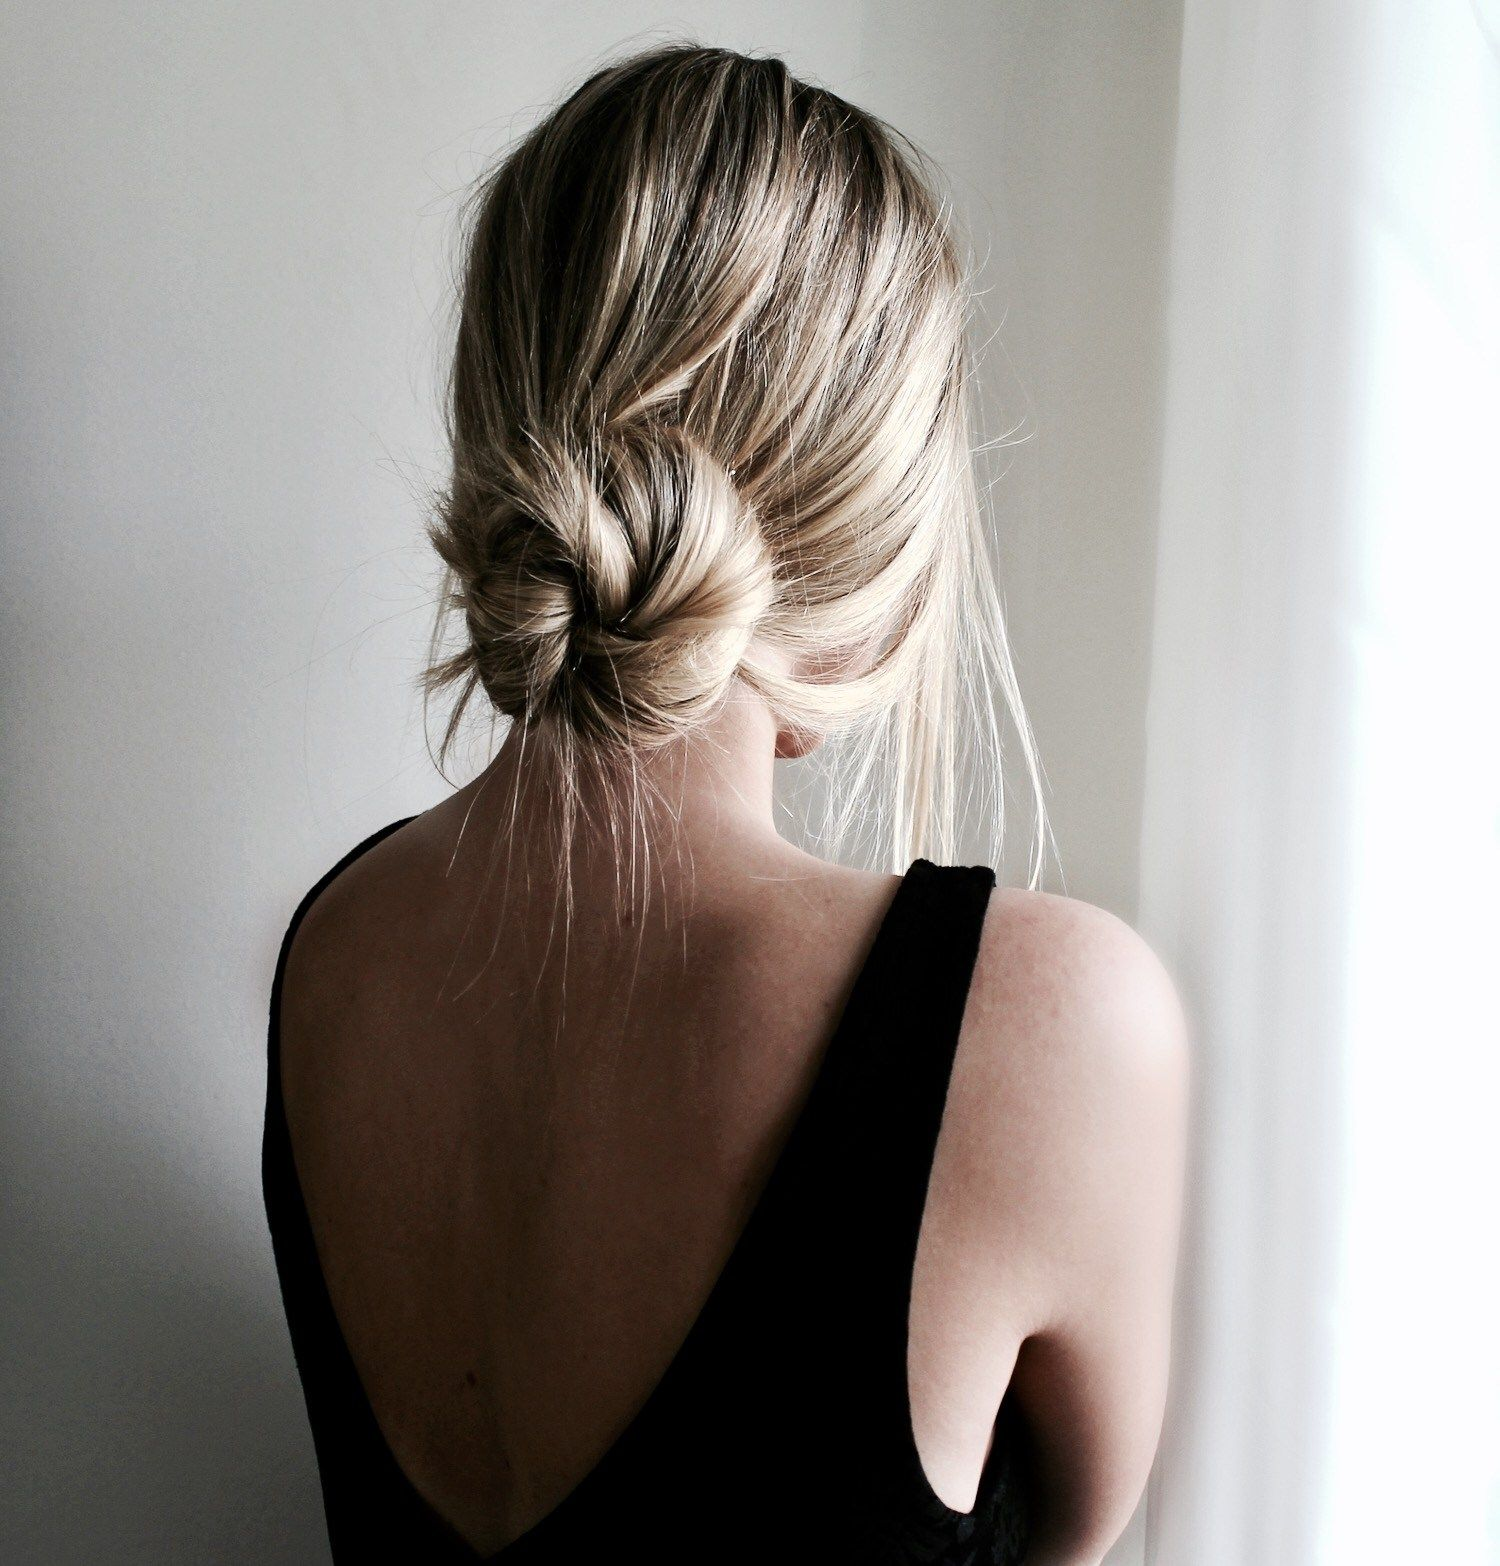 Sundays In A Messy Bun Easy Bun Hairstyles Low Bun Hairstyles Thick Hair Styles